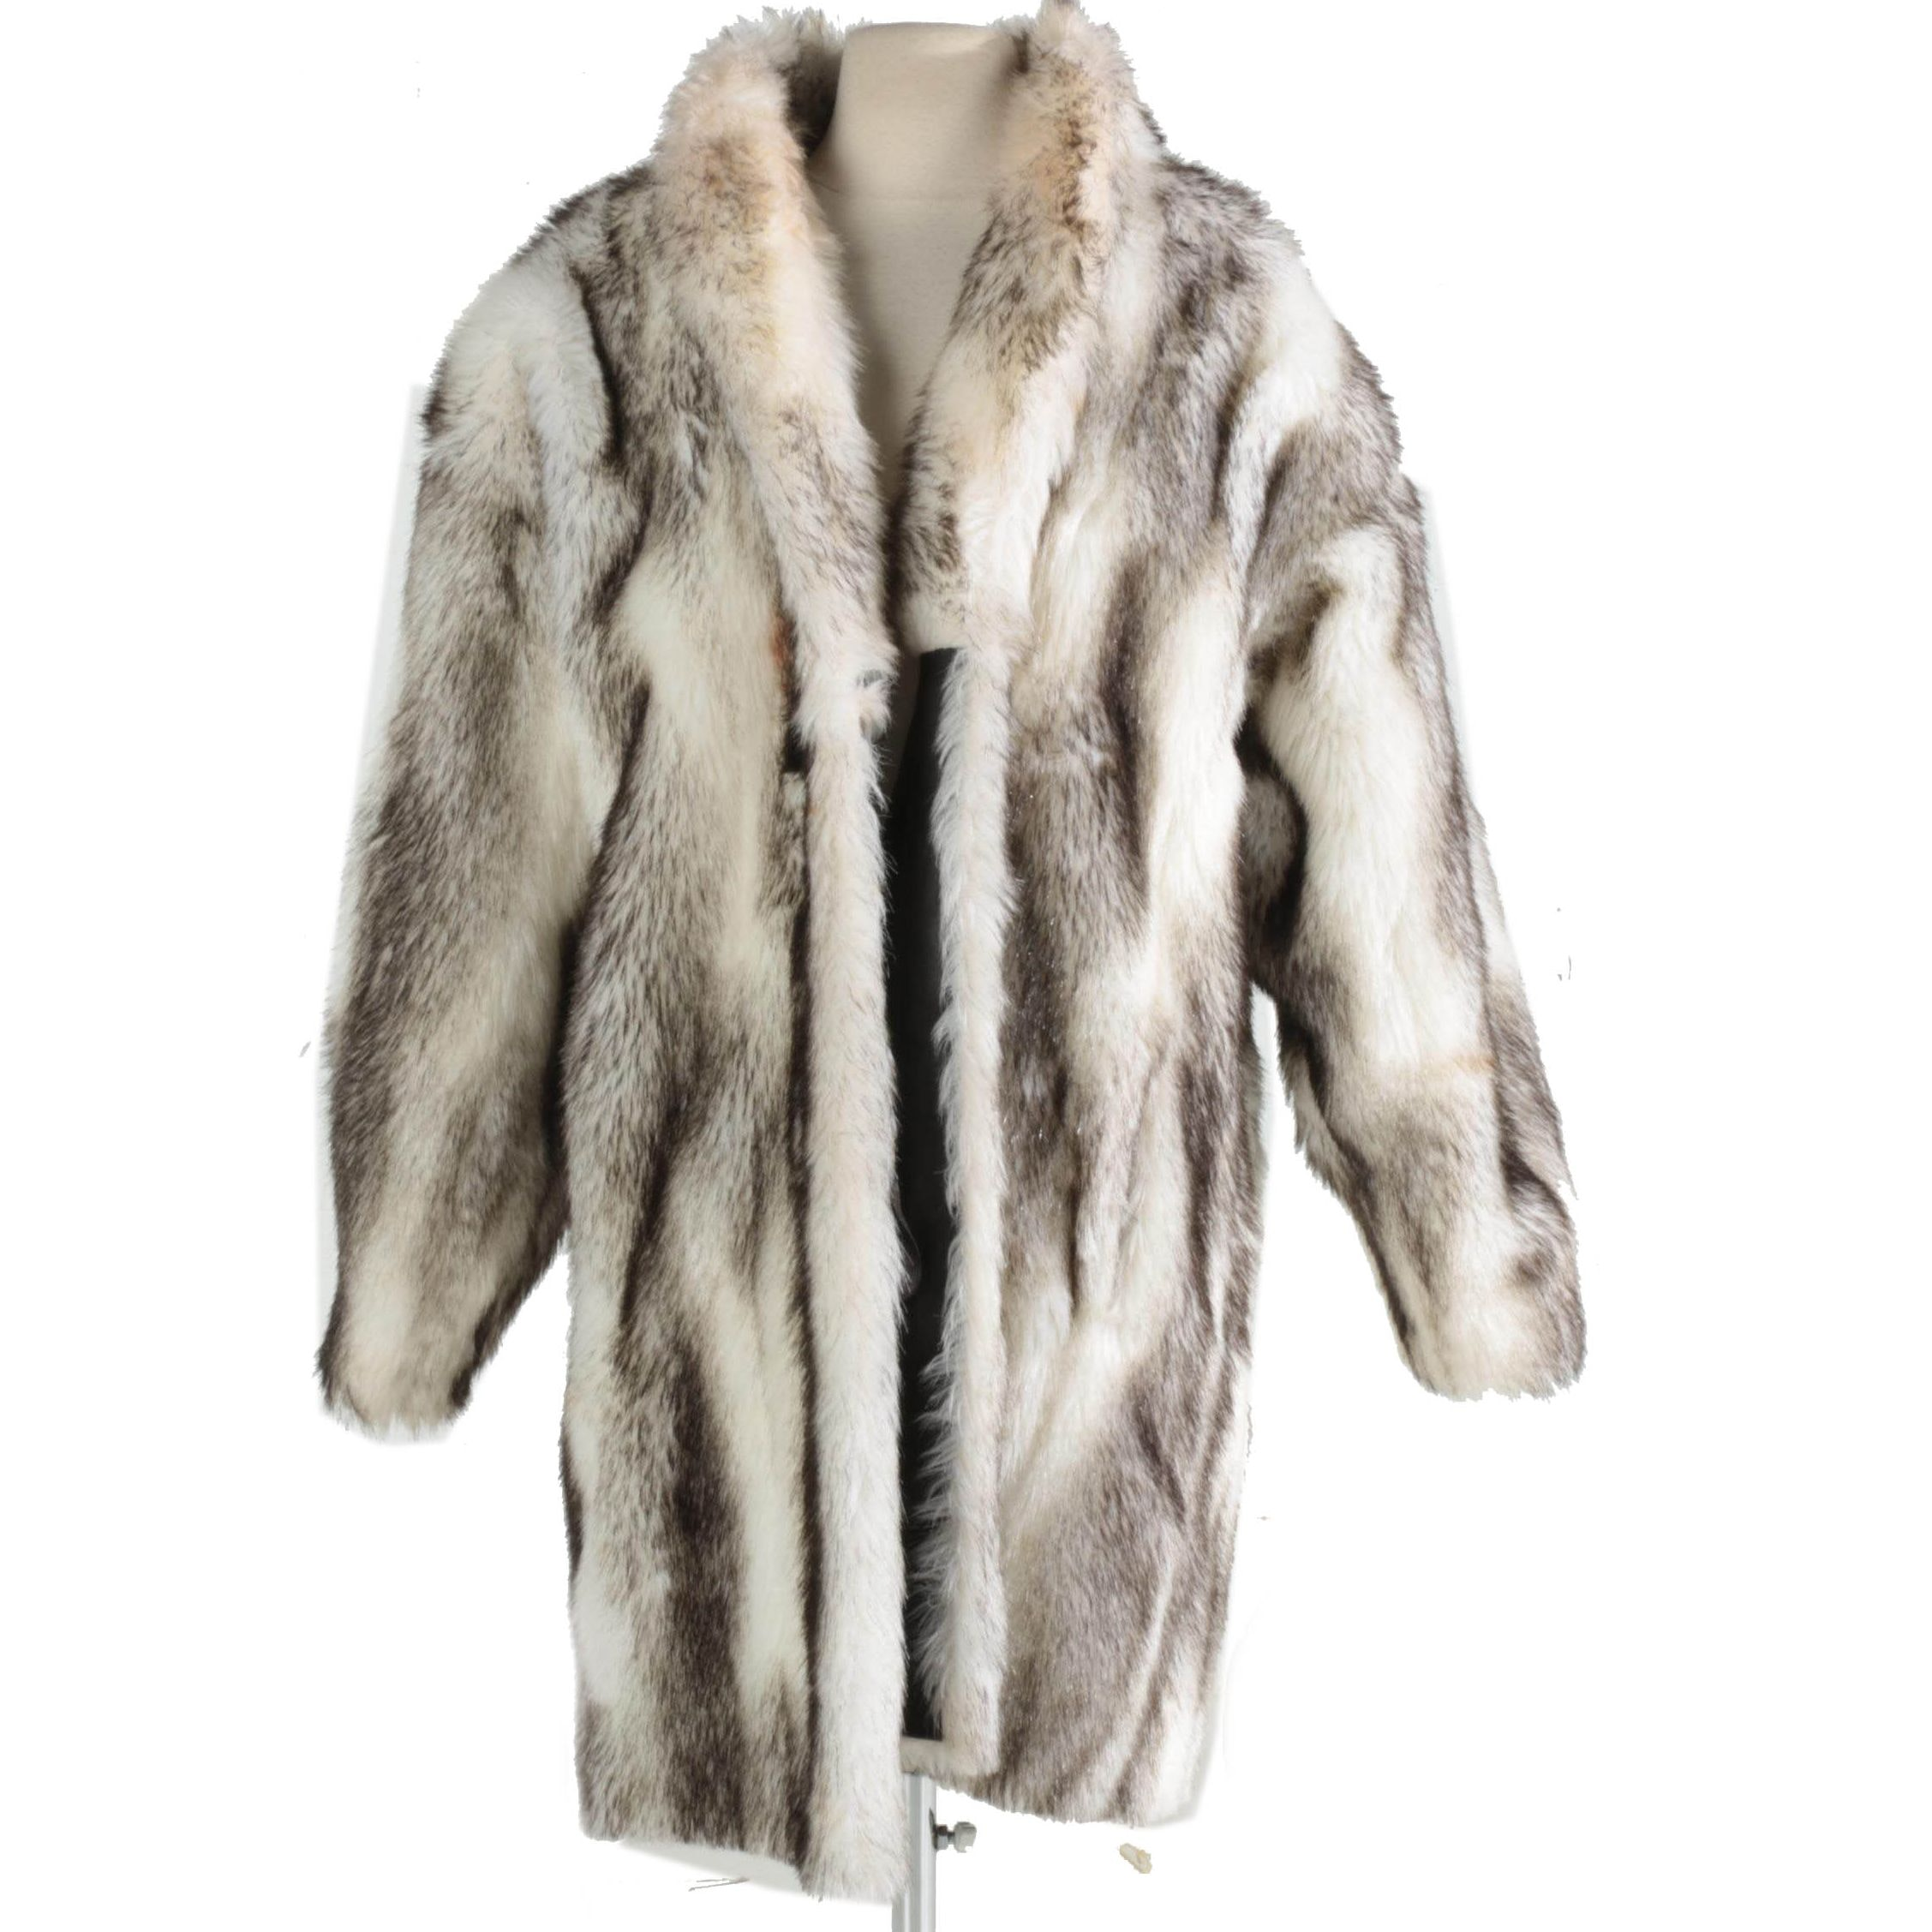 Vintage Faux Fur Coat by Russel Taylor